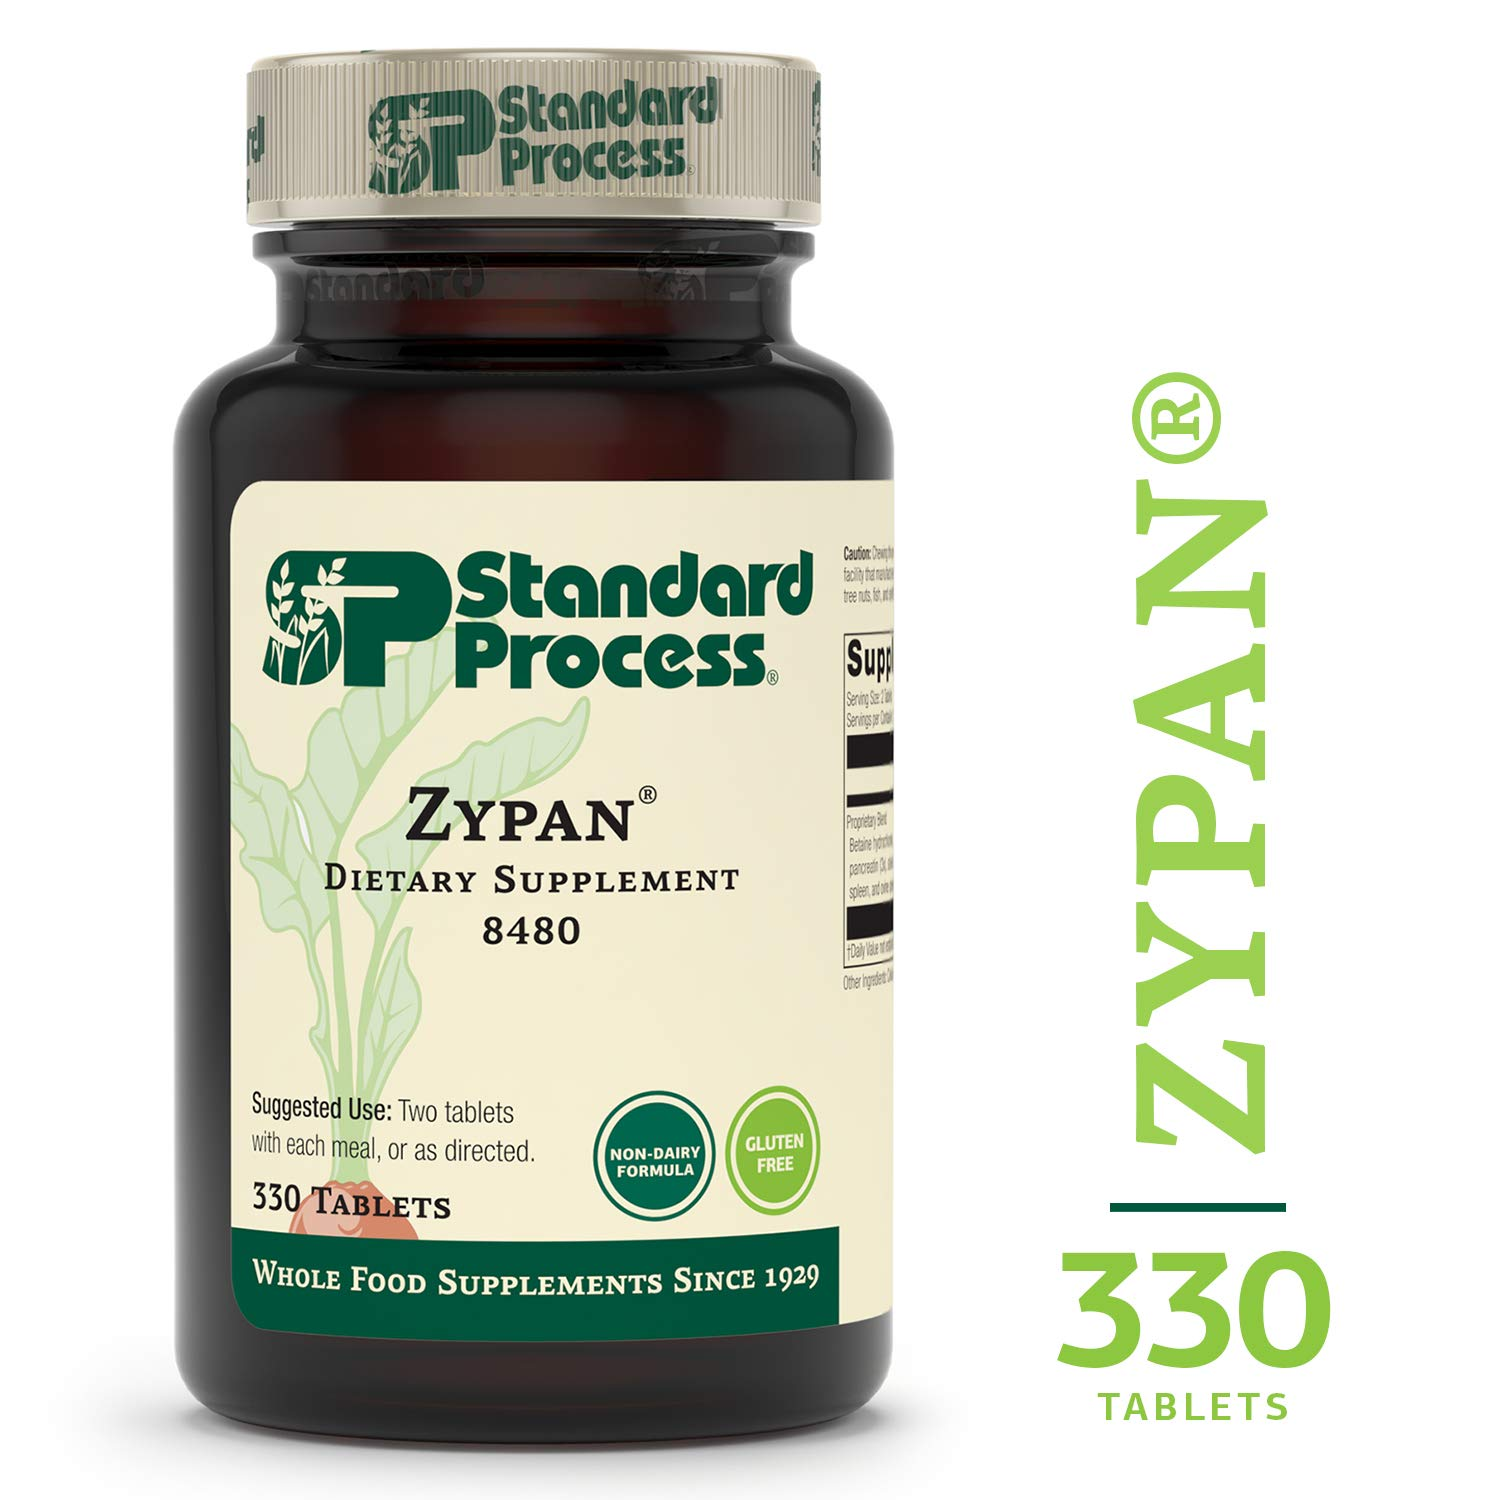 Standard Process - Zypan - Supports Healthy Digestion and Gastrointestinal pH, Enzymatic Support for Protein Digestion, Provides Pancreatin, Pepsin, Betaine Hydrochloride, Gluten Free - 330 Tablets